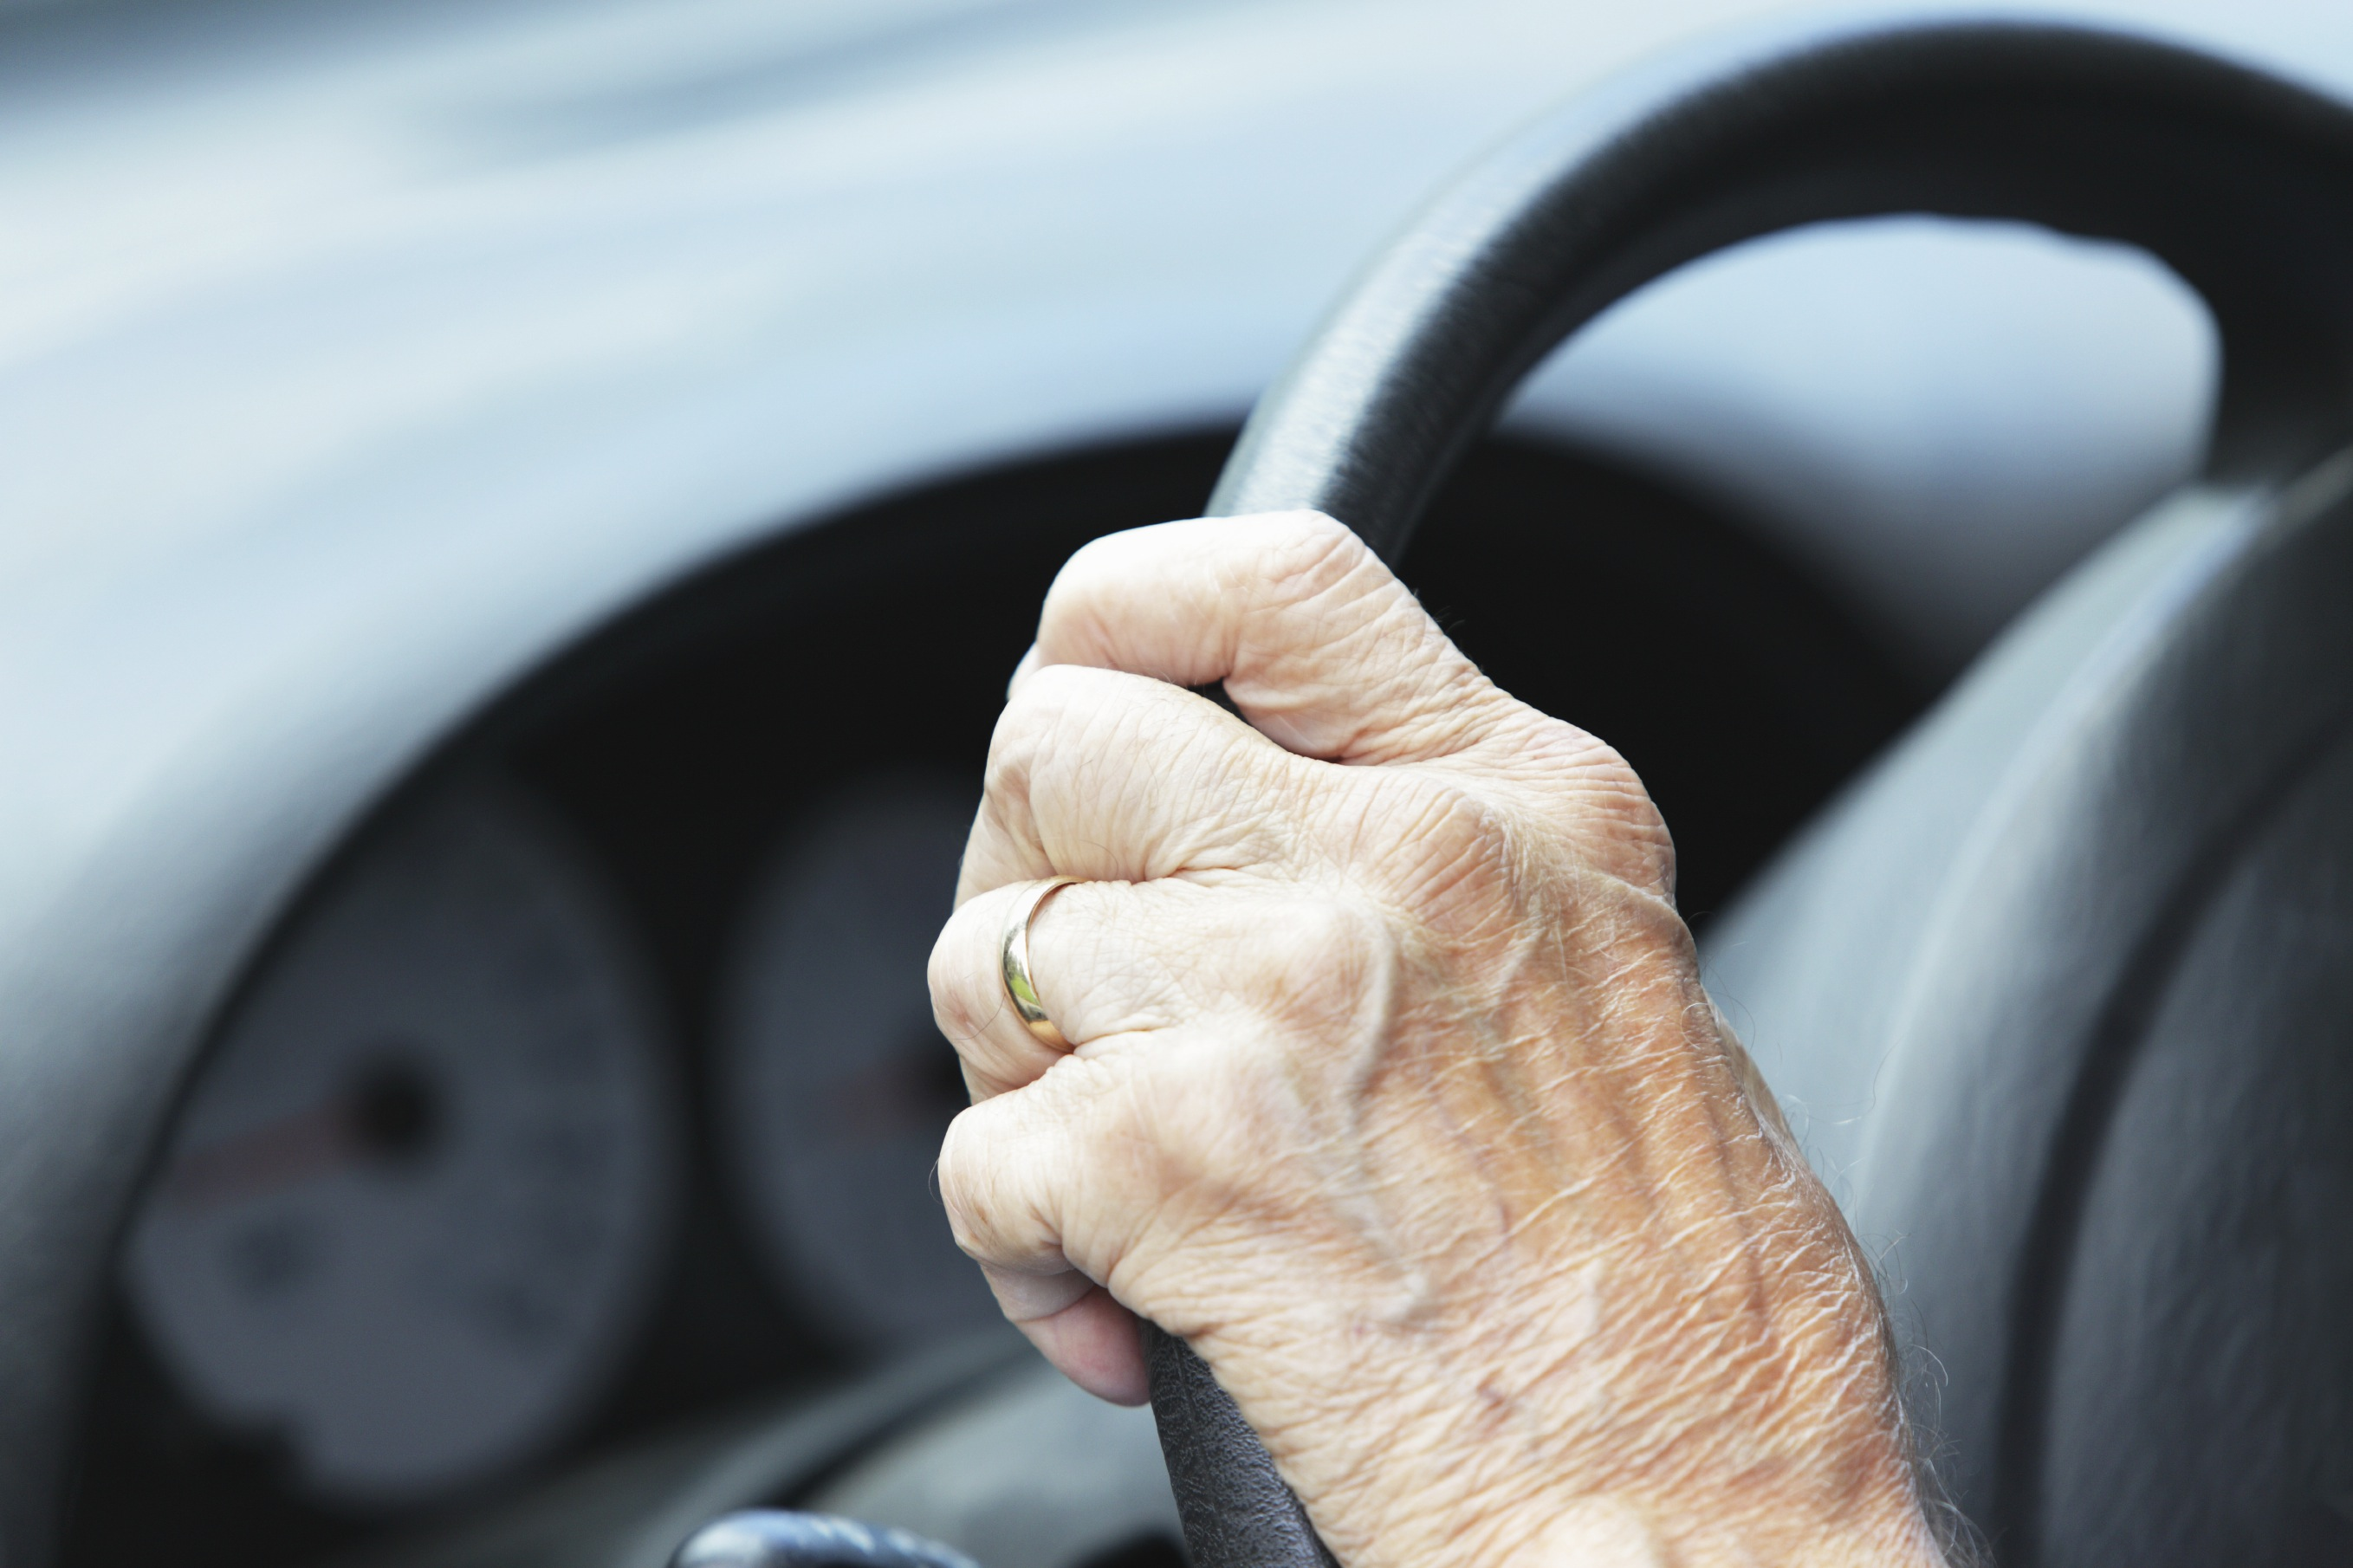 Talking to parents about giving up driving is tough, but safety is paramount credit: istockphoto.com/willowpix